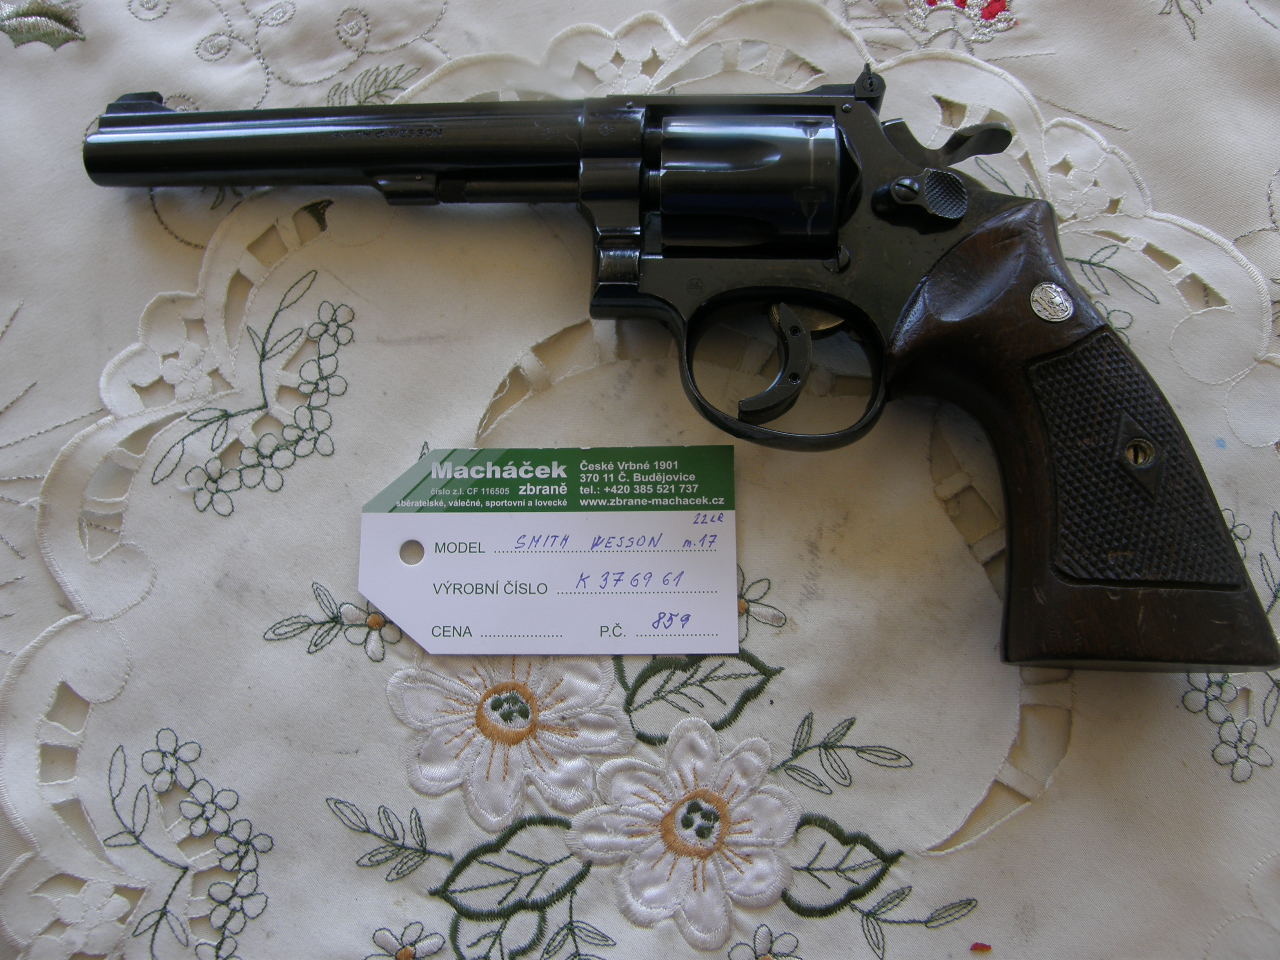 Revolver Smith Wesson Mod. 17-2 v.č. K 376961 r. 22 LR.